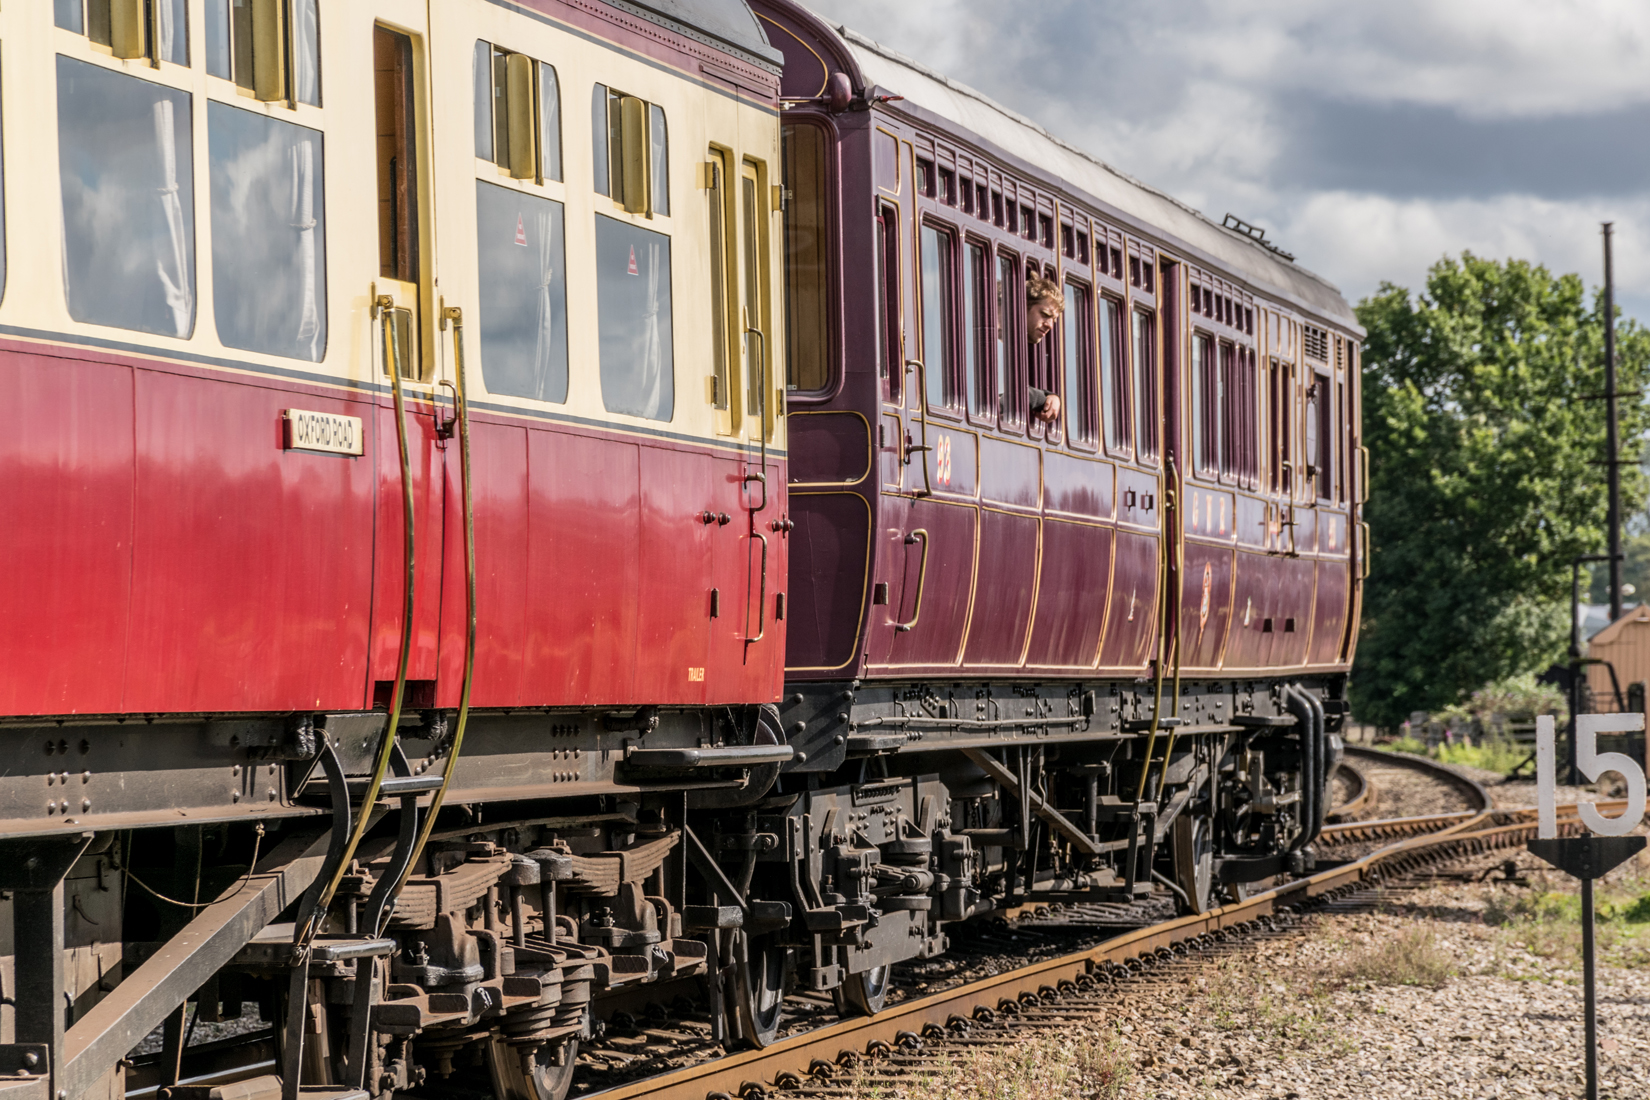 Steam Railmotor No. 93 runing in a three coach train format with 213 a Hawksworth Auto Trailer and 92 a Churchward Auto Trailer